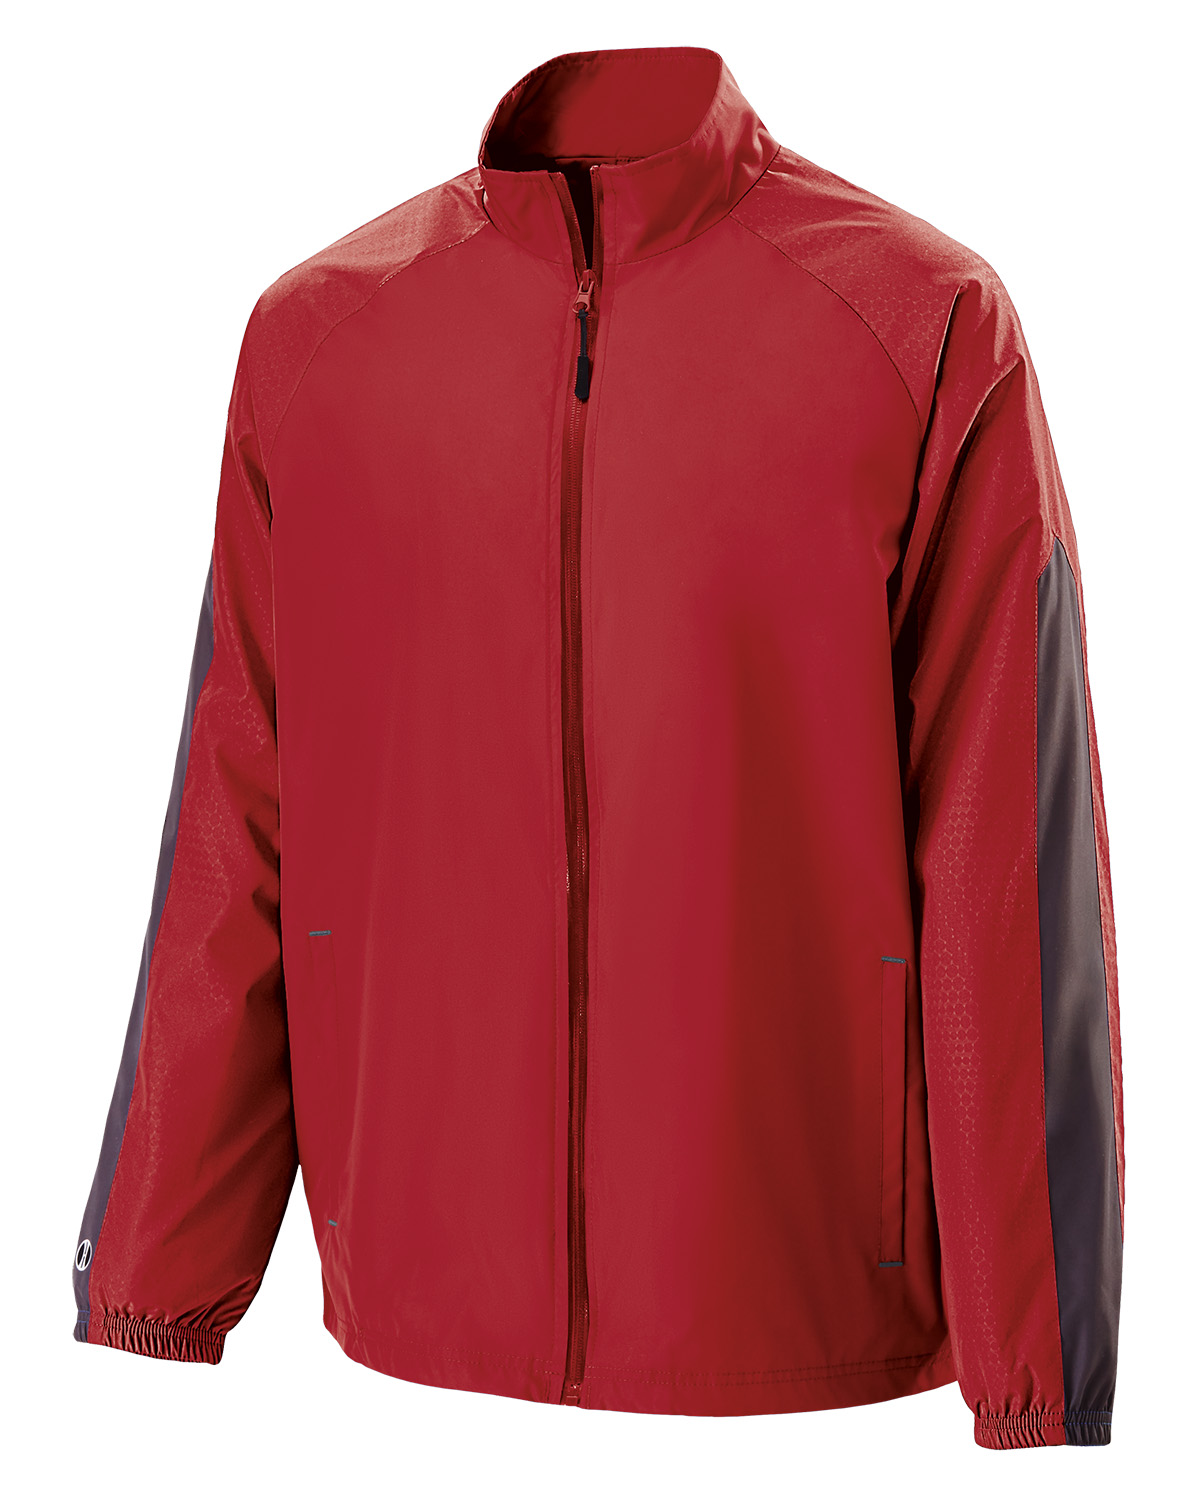 Holloway 222412 - Adult Polyester Bionic Jacket